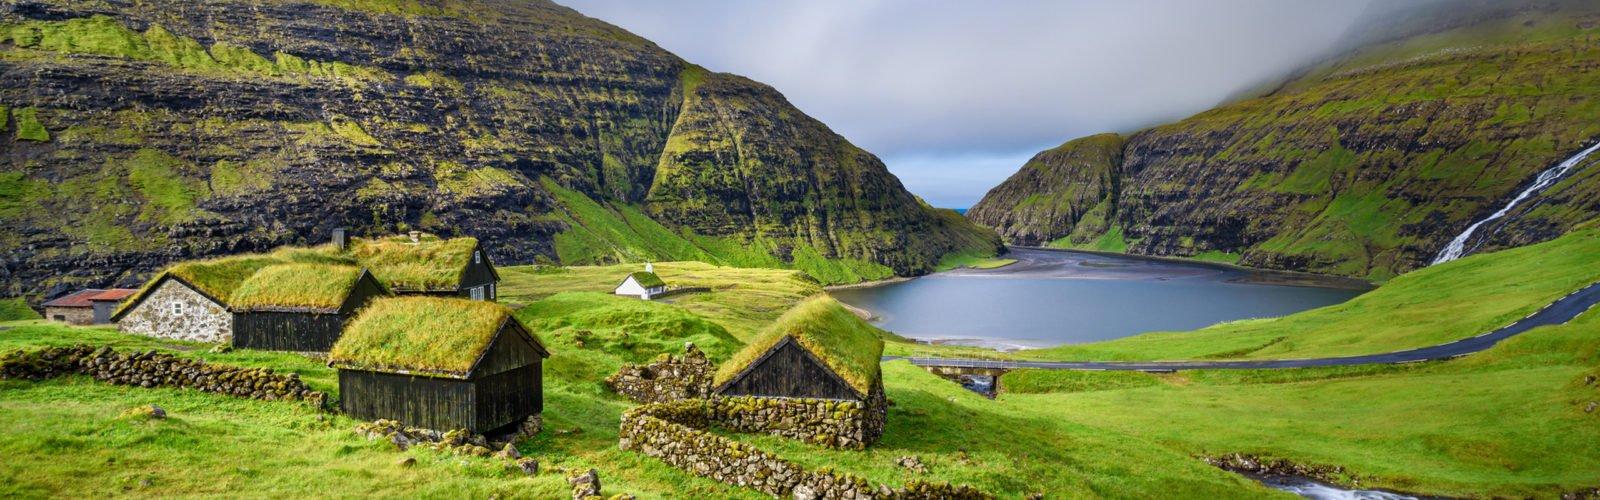 saksun-village-faroe-islands-denmark